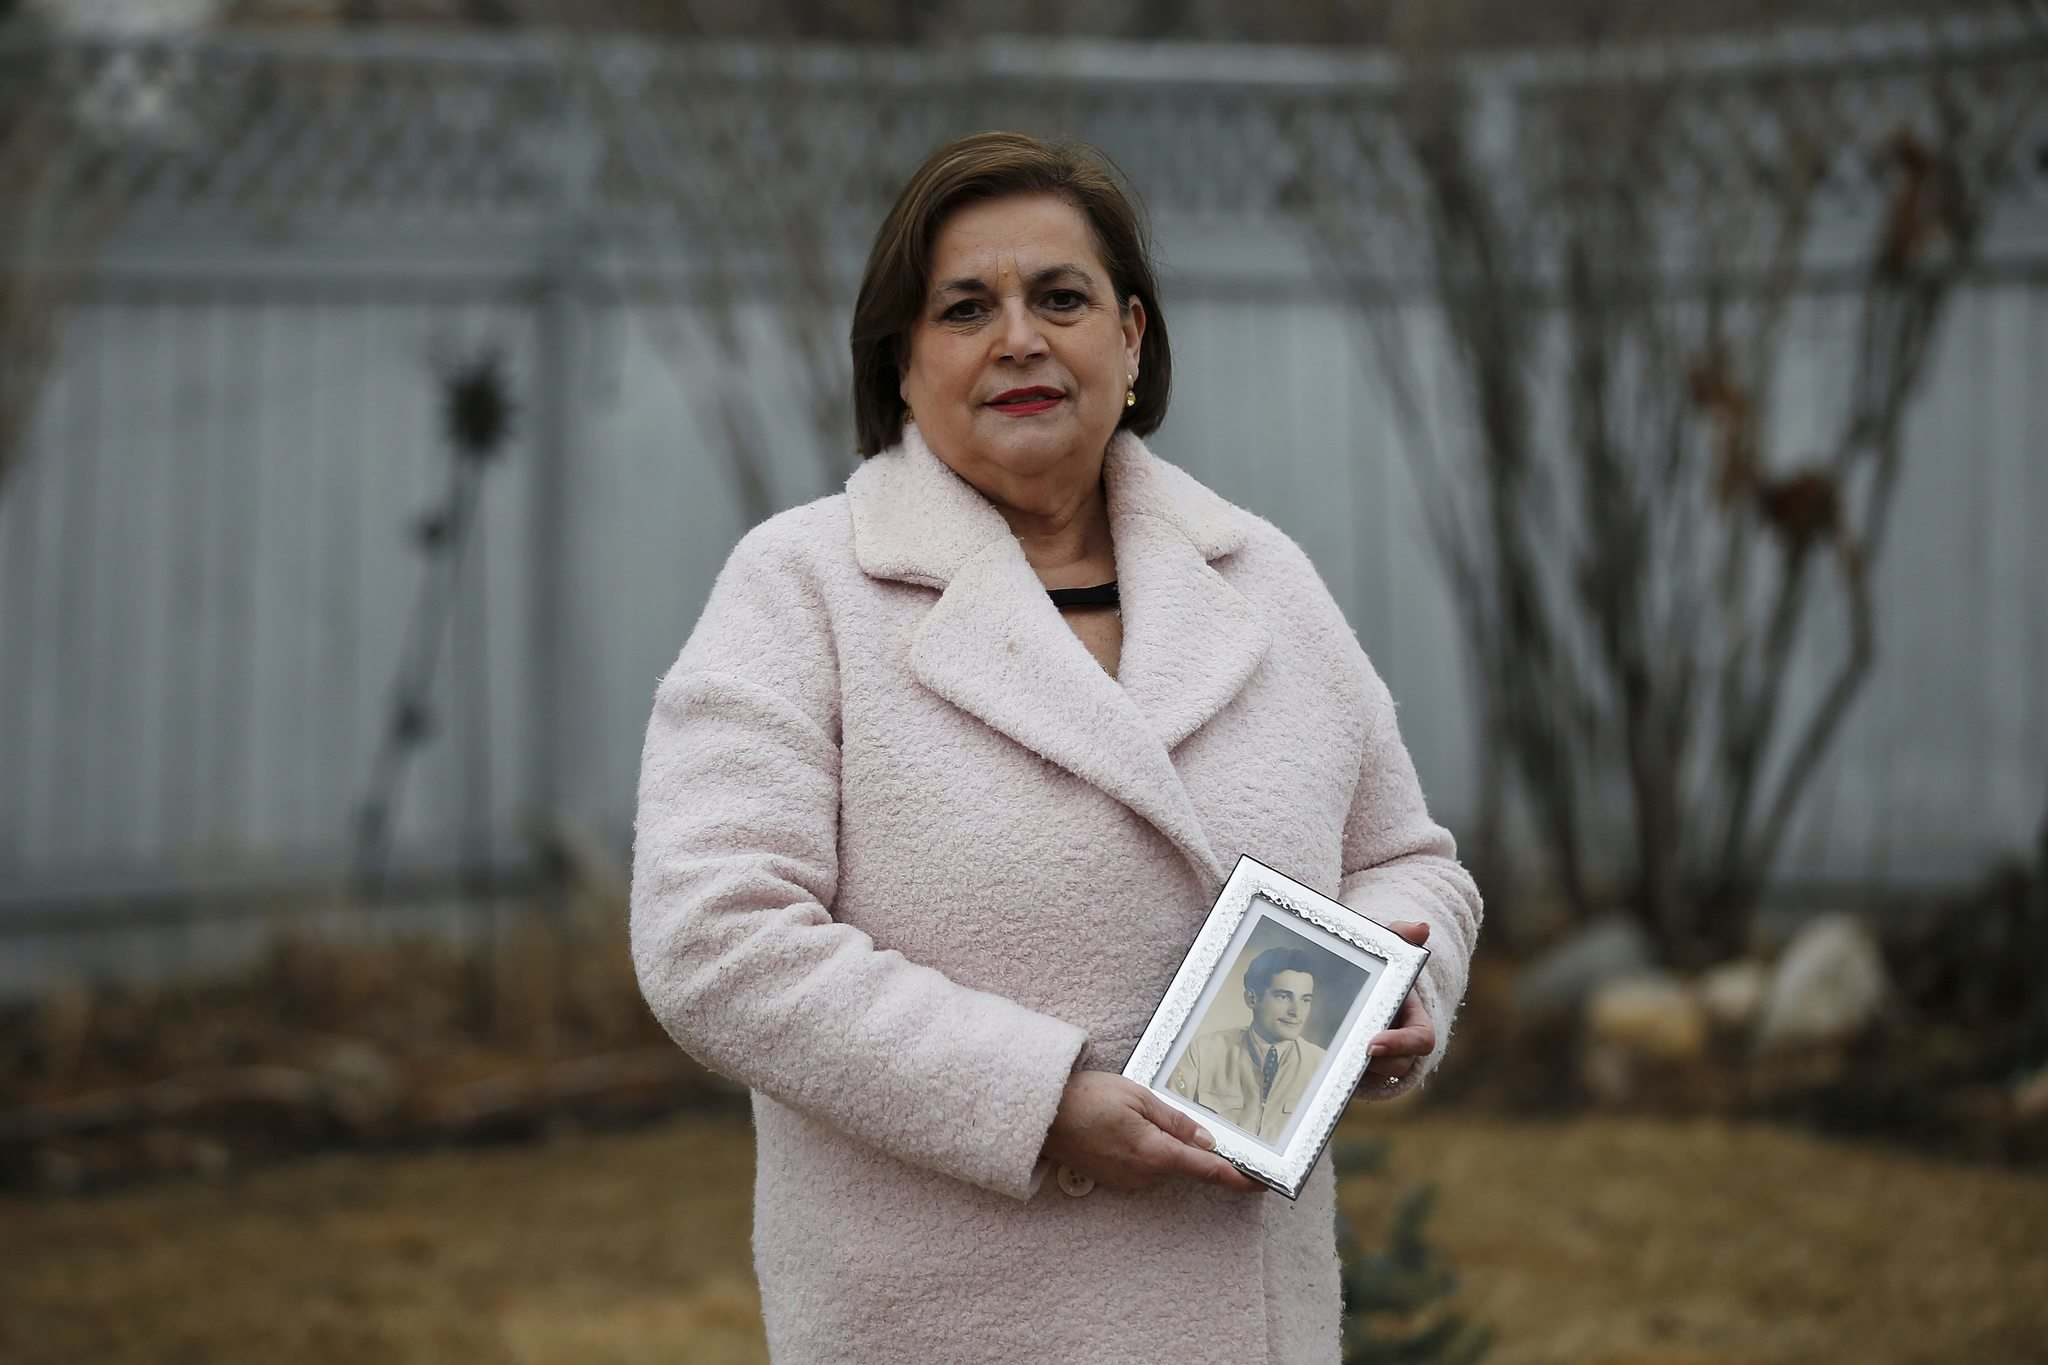 Eddie Calisto-Tavares holds a photo of her father Manuel dos Santos de Sousa Calisto who died of COVID-19 at Maples Long Term Care Home. He was one of 56 residents who died from the virus between Oct. 20 and Jan. 12 at the facility. (John Woods / Winnipeg Free Press files)